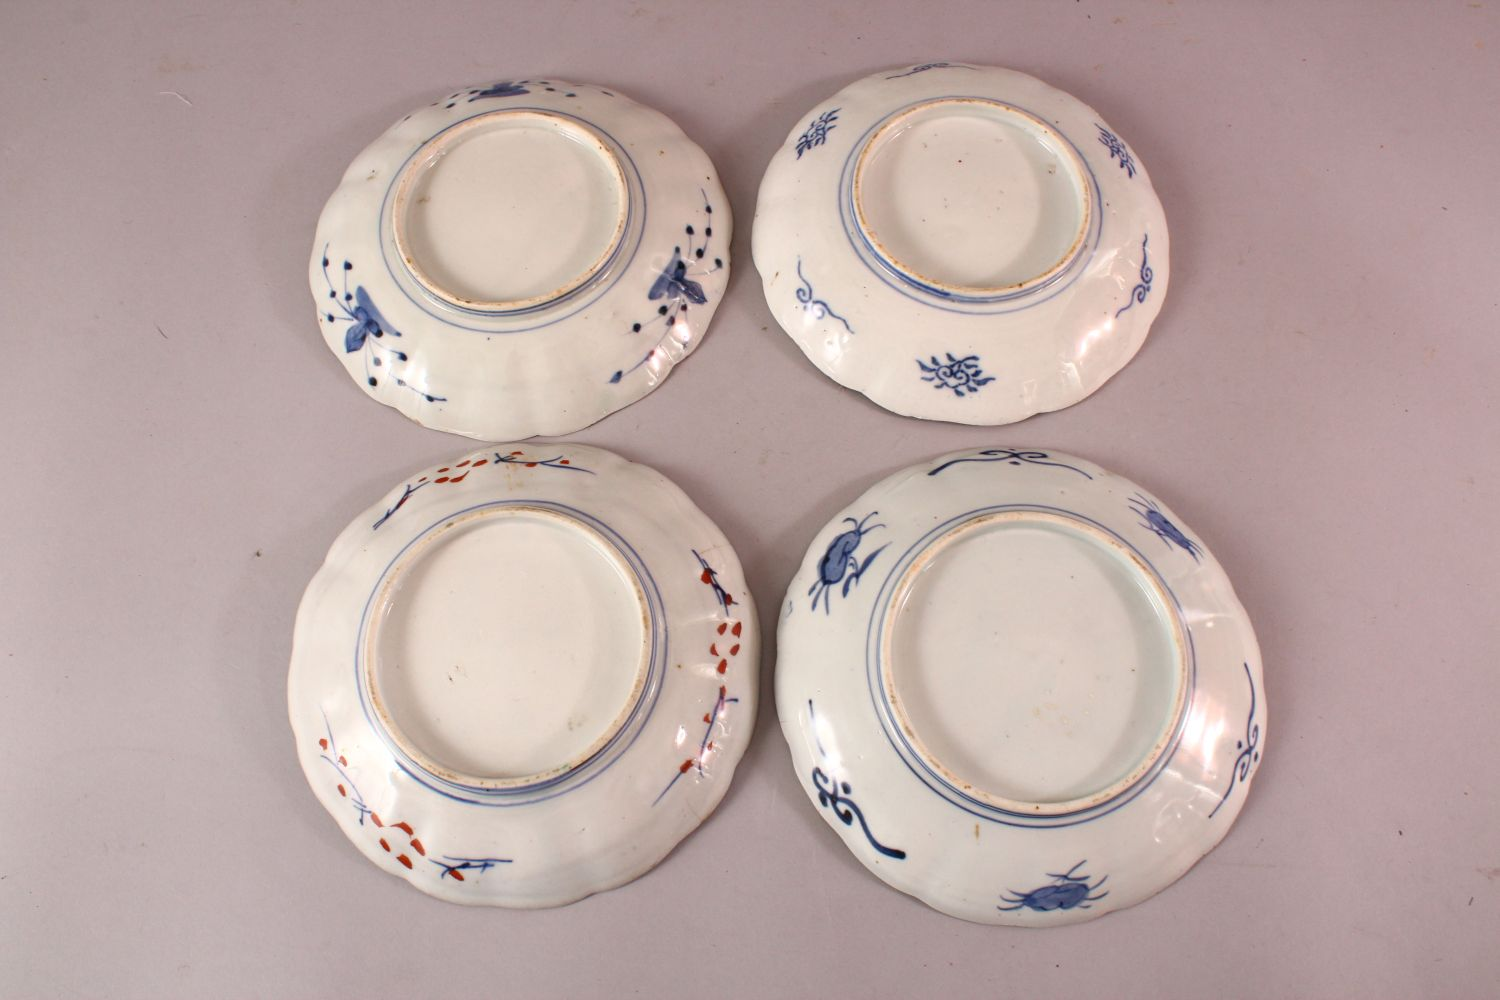 FOUR JAPANESE MEIJI PERIOD IMARI PORCELAIN PLATES, each with varying decoration in typical palate, - Image 2 of 2